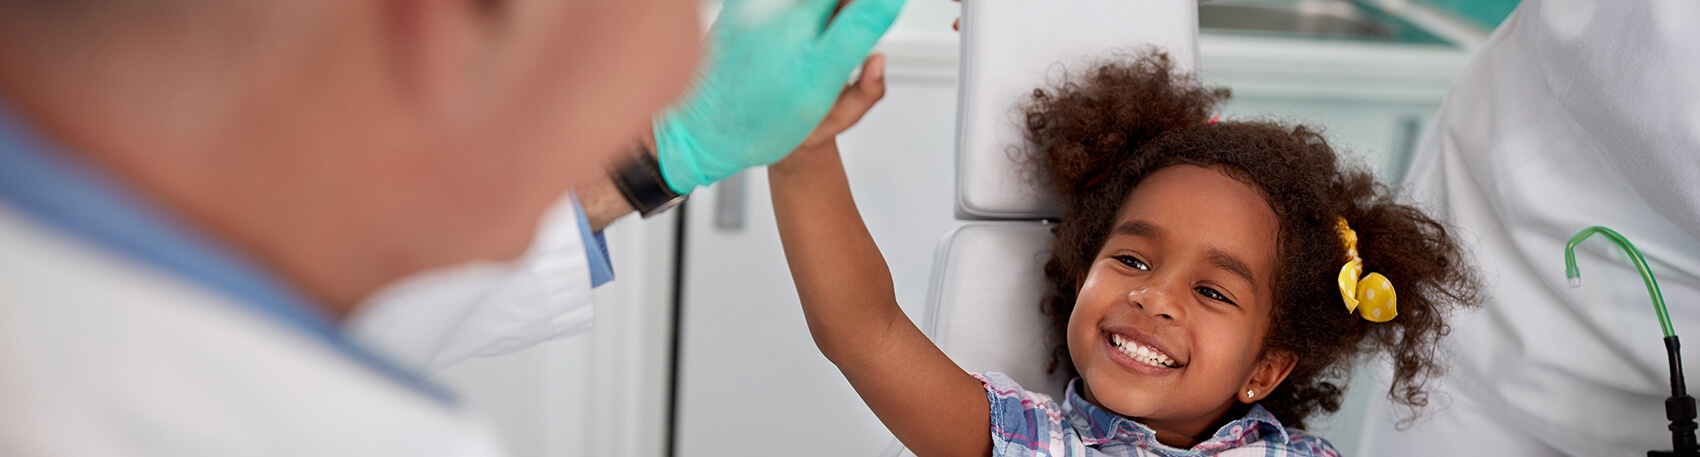 young girl giving her dentist a high five